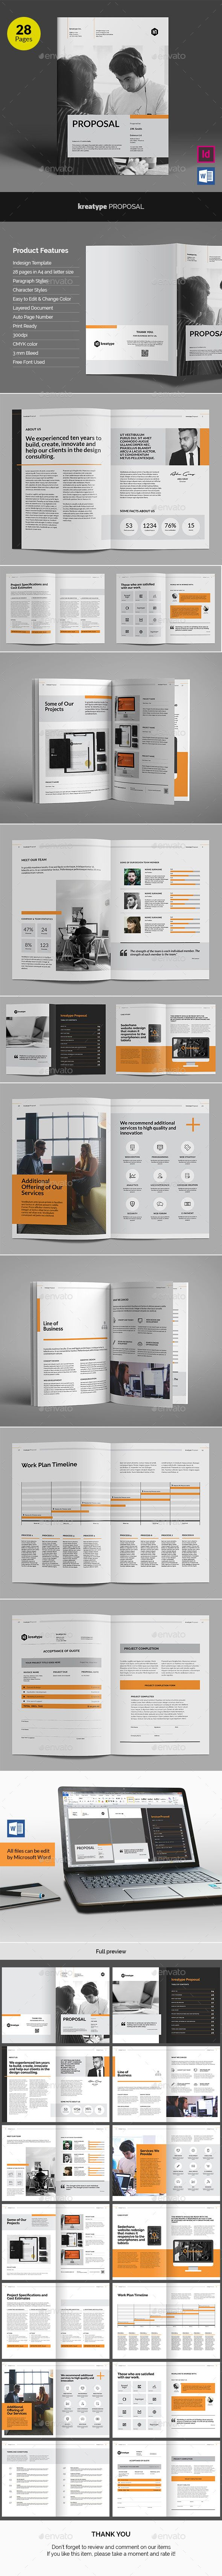 Kreatype Business Proposal Template 	InDesign INDD - 28 Pages in A4 and Letter Size